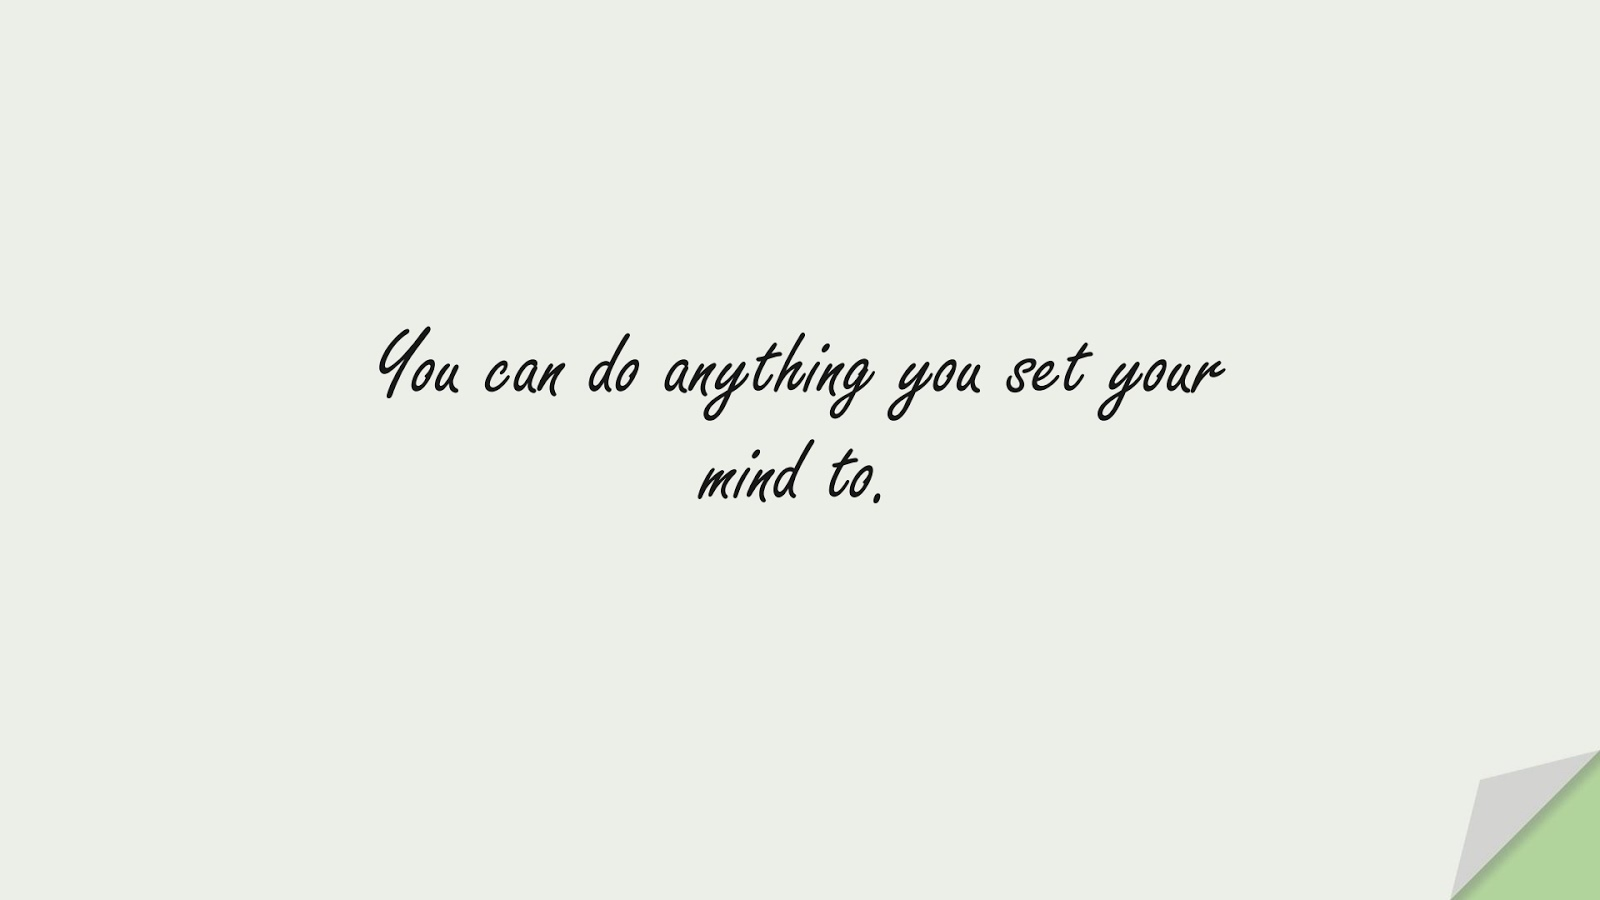 You can do anything you set your mind to.FALSE